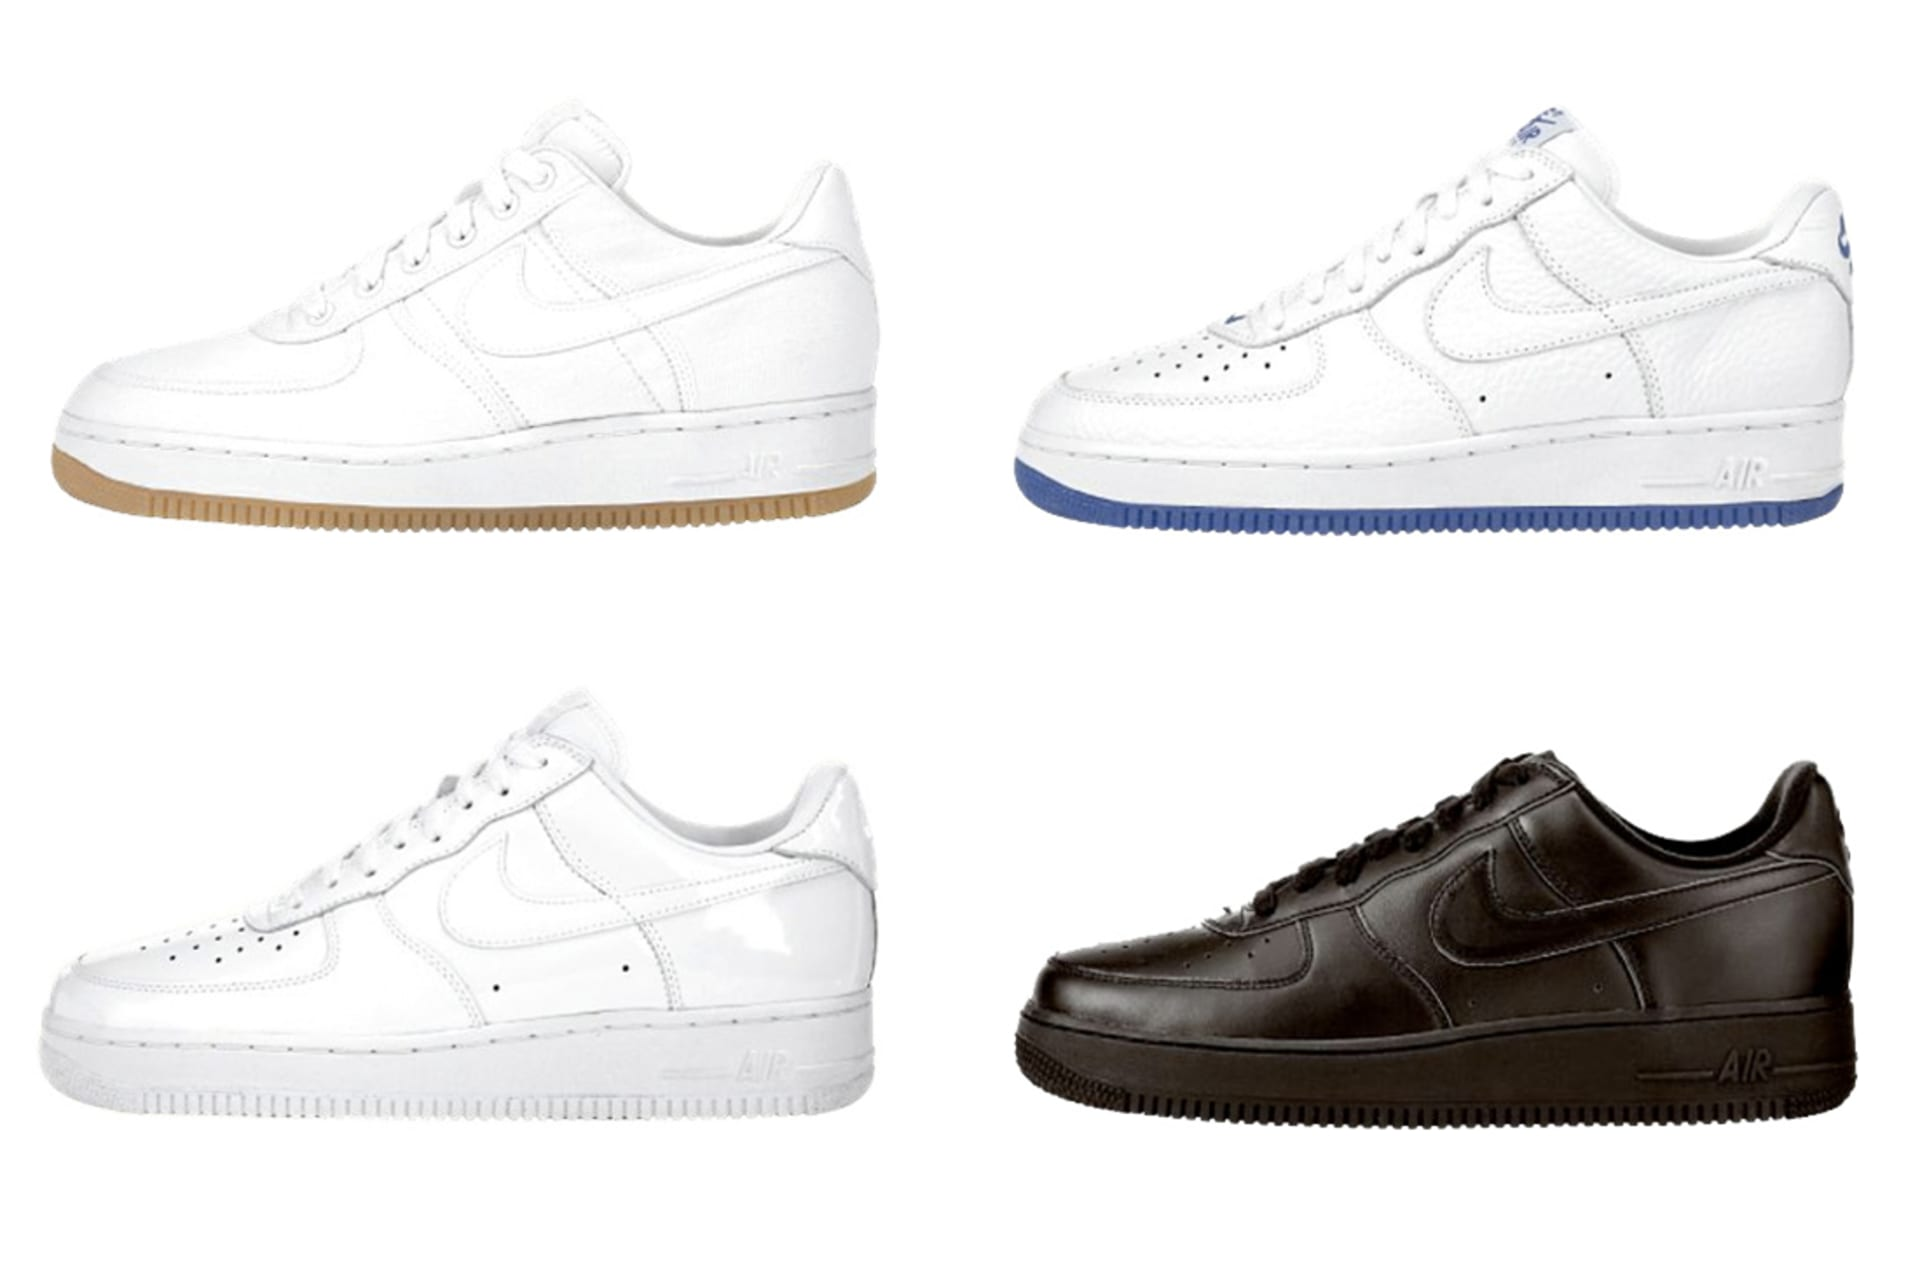 new arrival 3fc56 b2430 1996 Nike Air Force 1